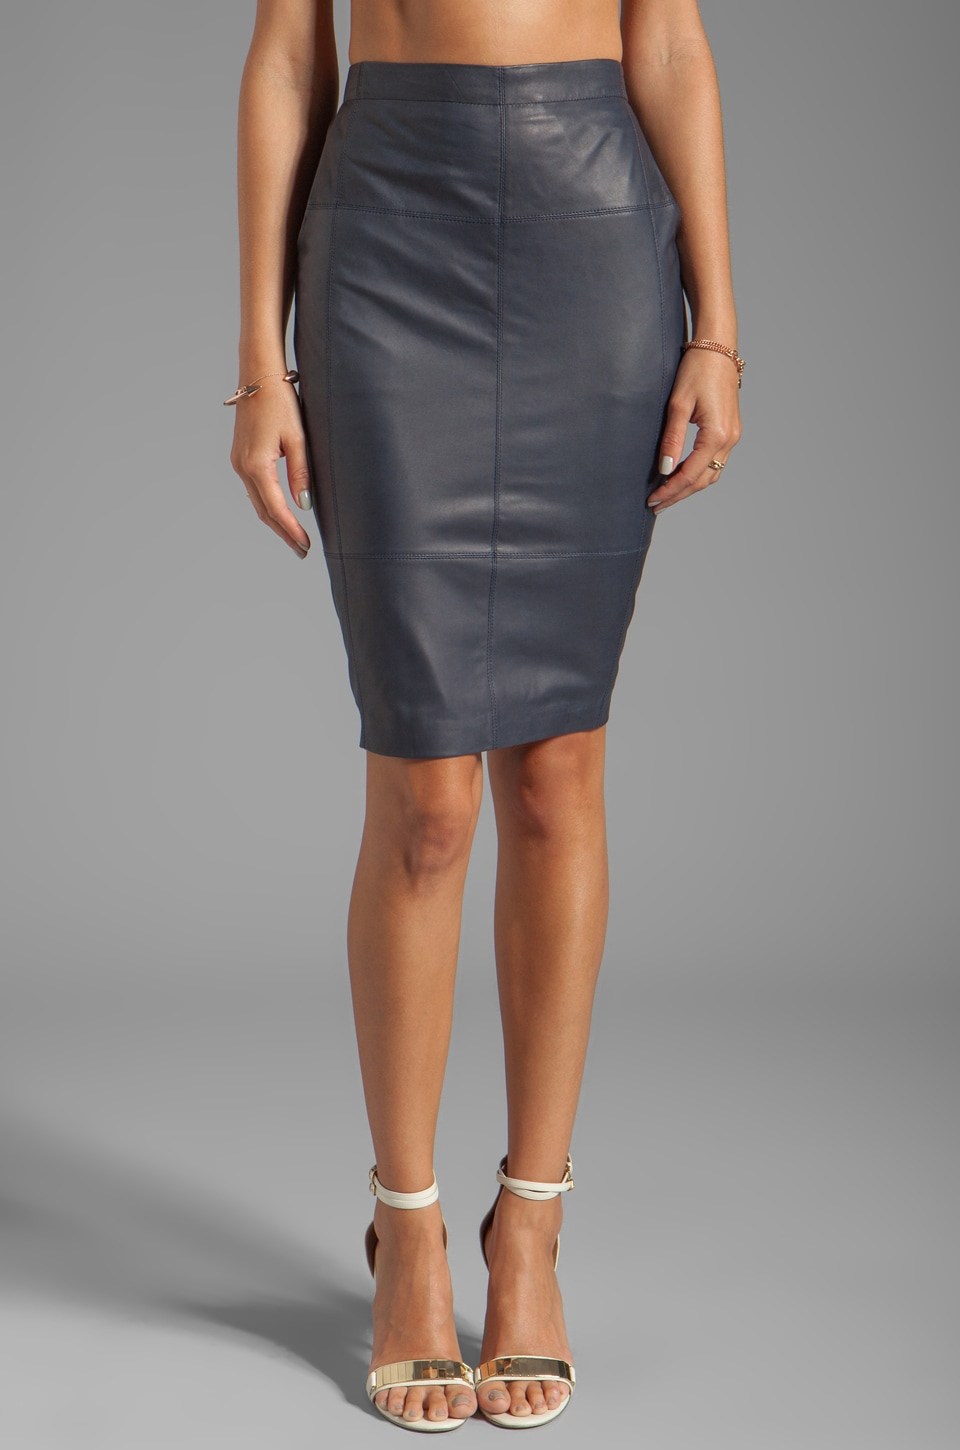 Halston Heritage Leather Combo Pencil Skirt in Midnight